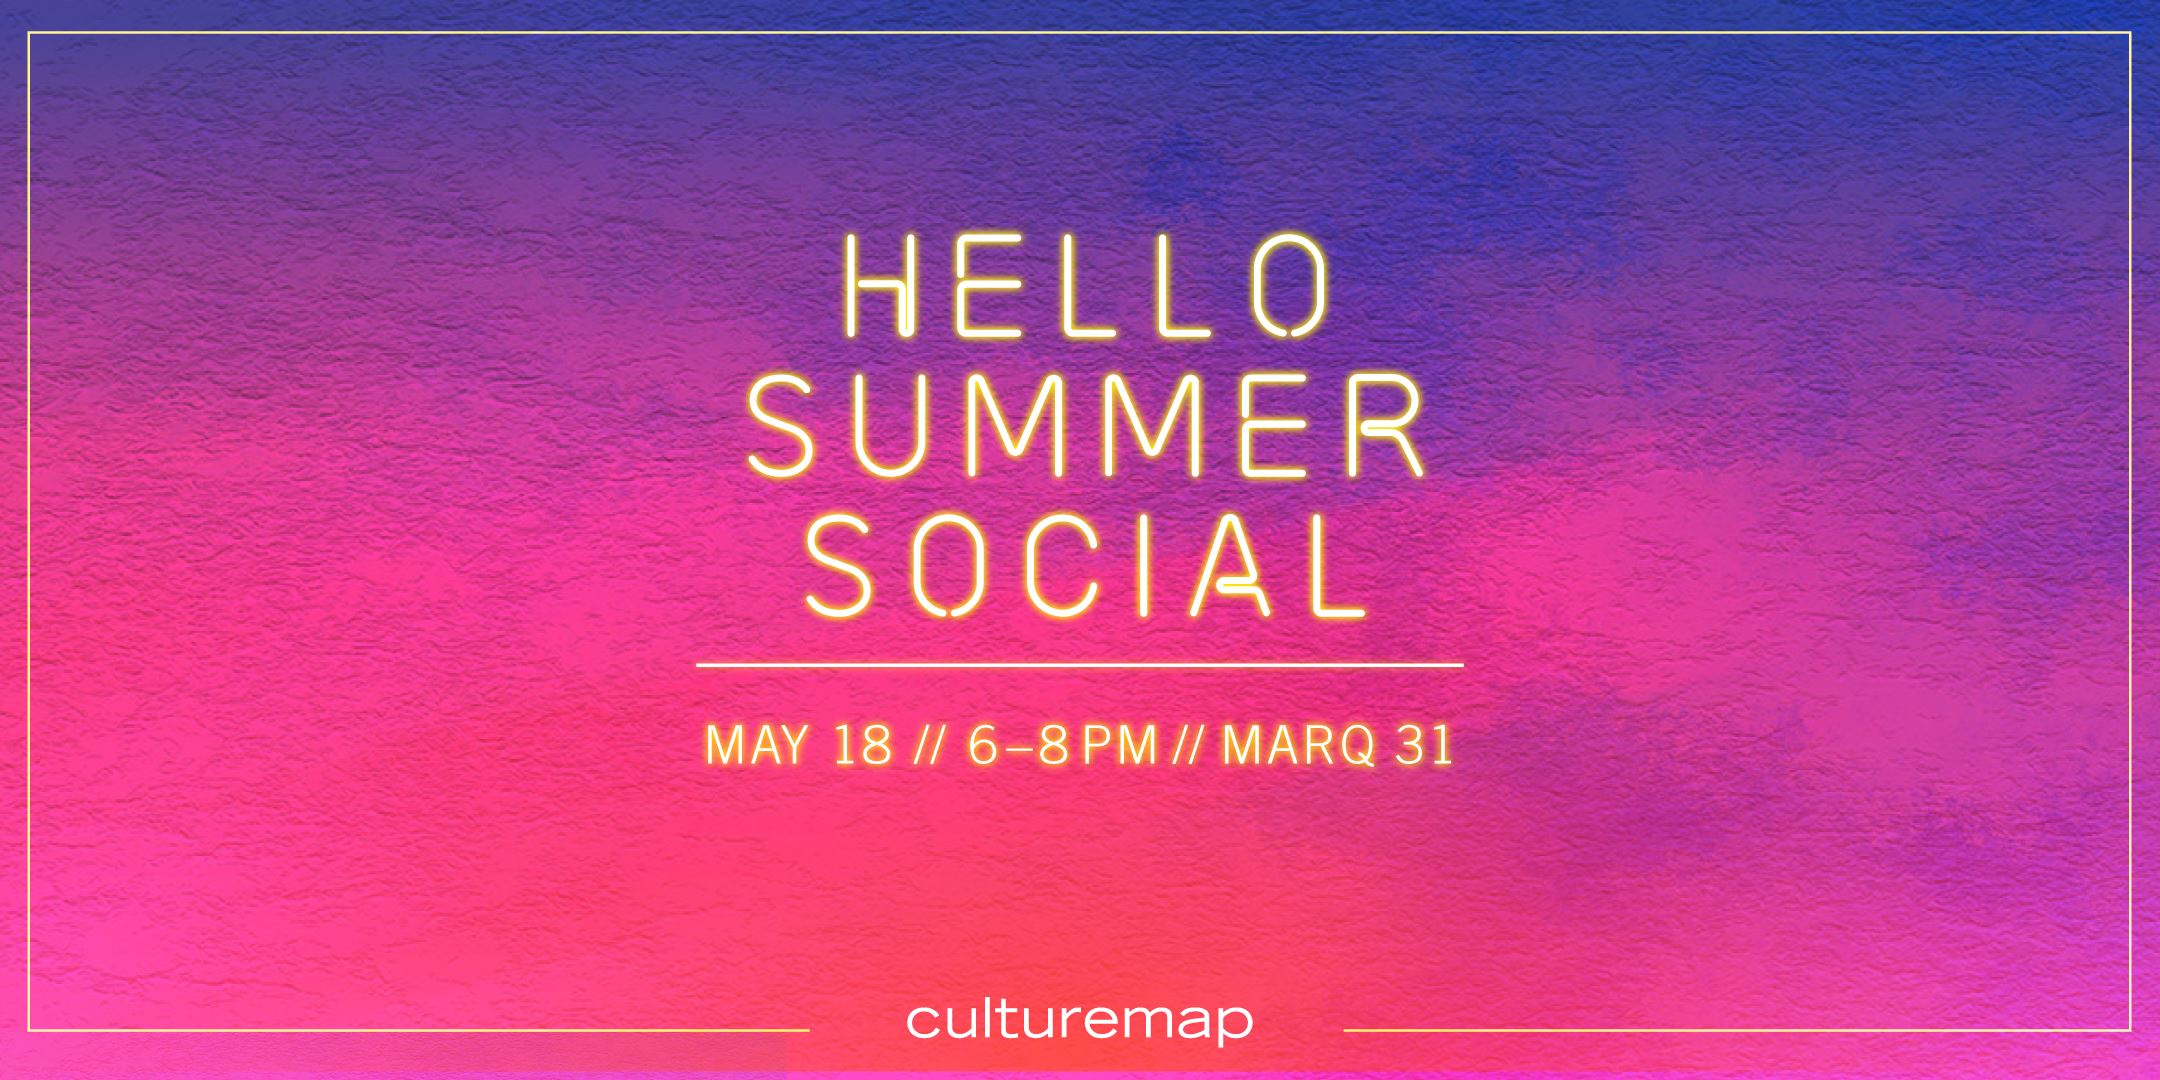 CultureMap Hello Summer Social at Marq 31 | Houston Photo Booth